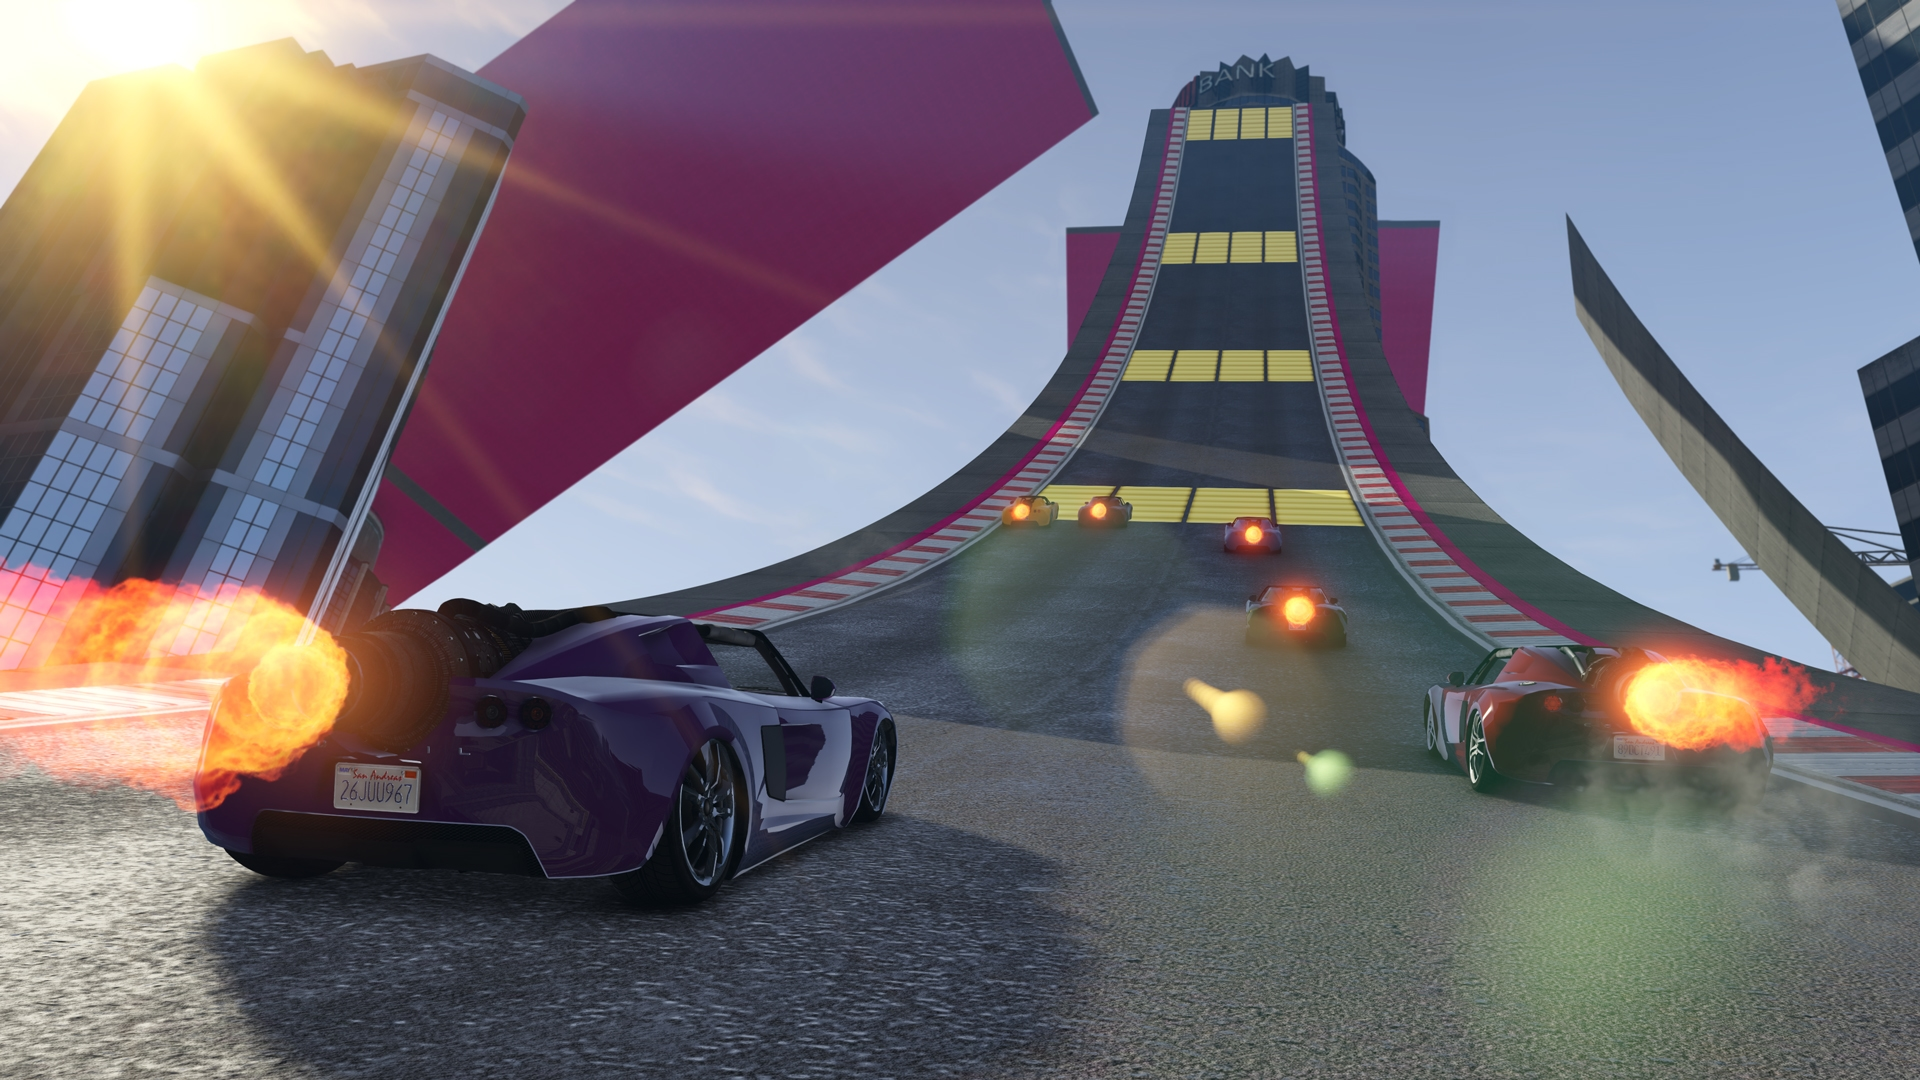 gta new car releaseComing Soon to GTA Online Special Vehicle Races New Cars Modes